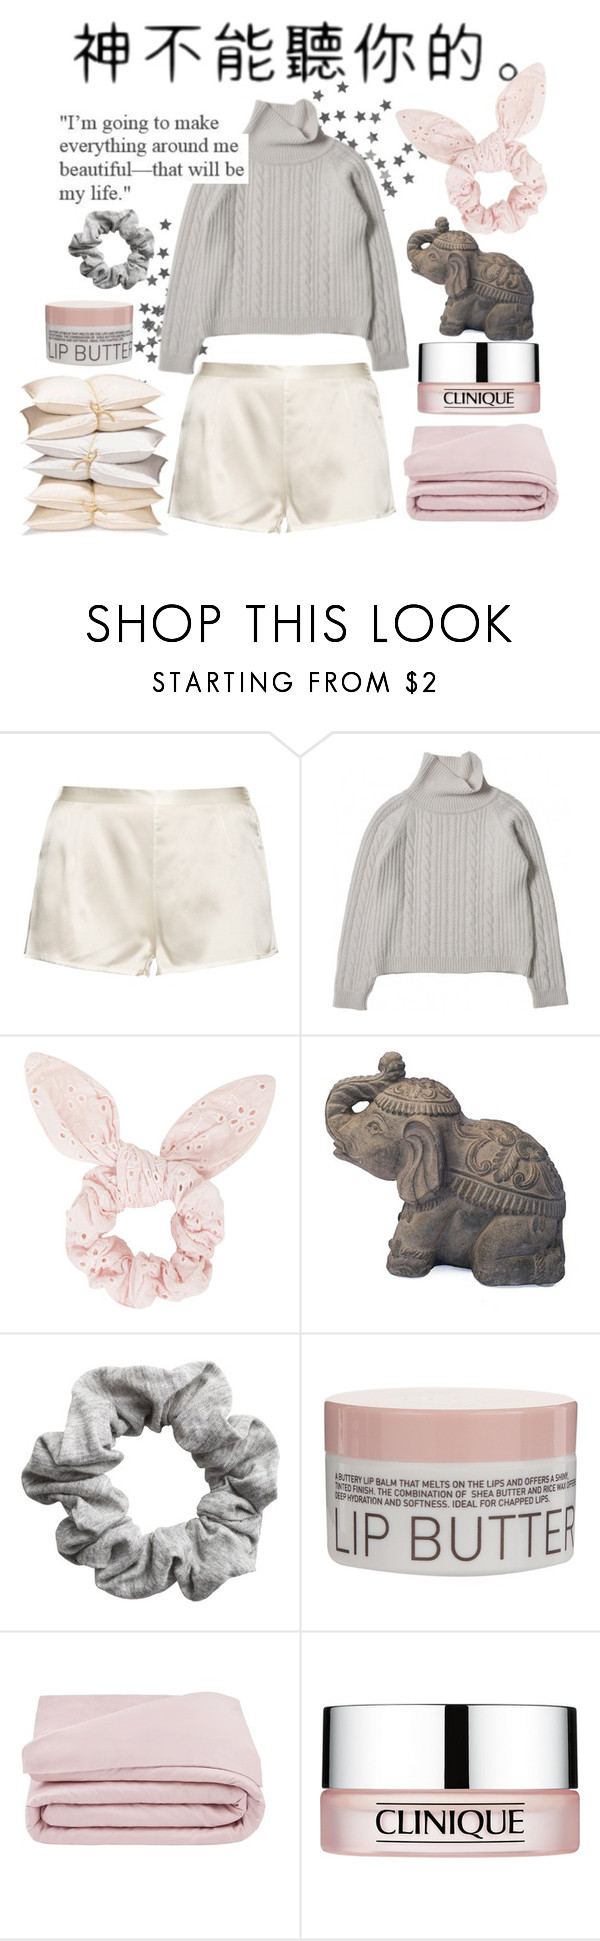 """Stay at home."" by rocio-kim ❤ liked on Polyvore featuring La Perla, Topshop, H&M, Korres, Frette and Clinique"